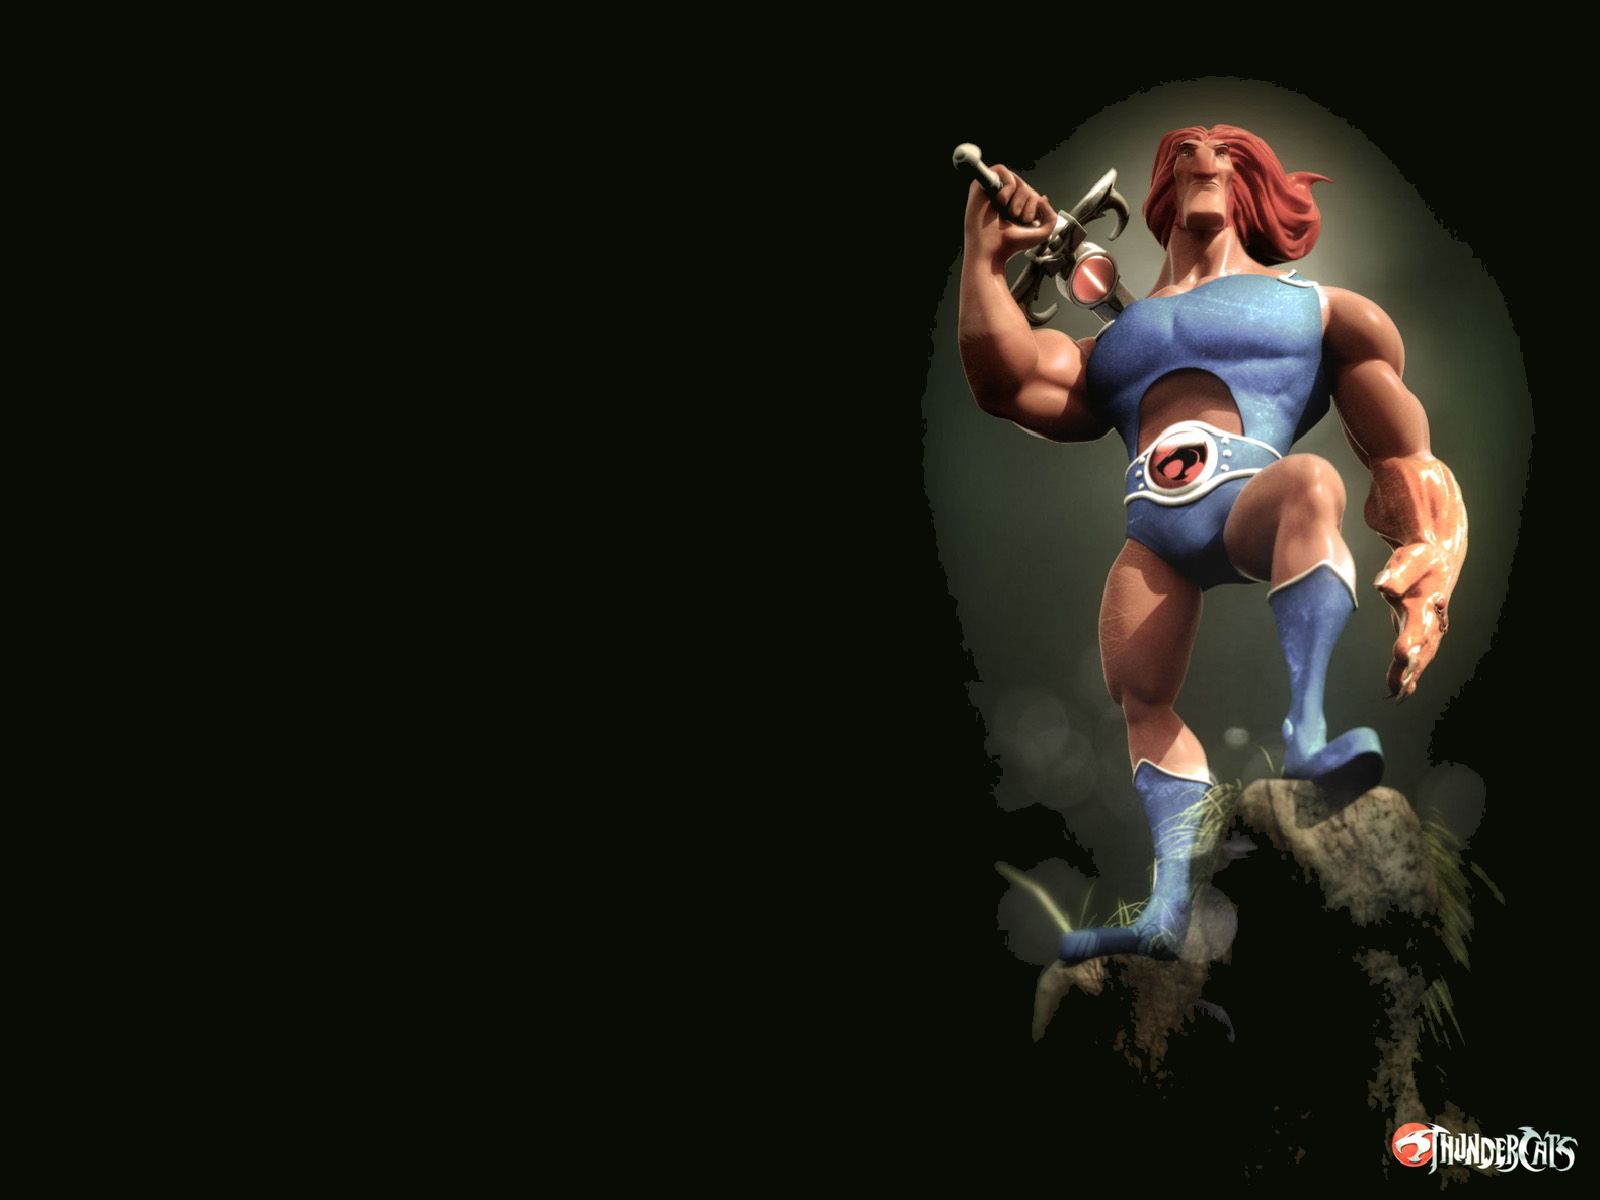 Thundercats Wallpaper and Background Image   1600x1200 ...